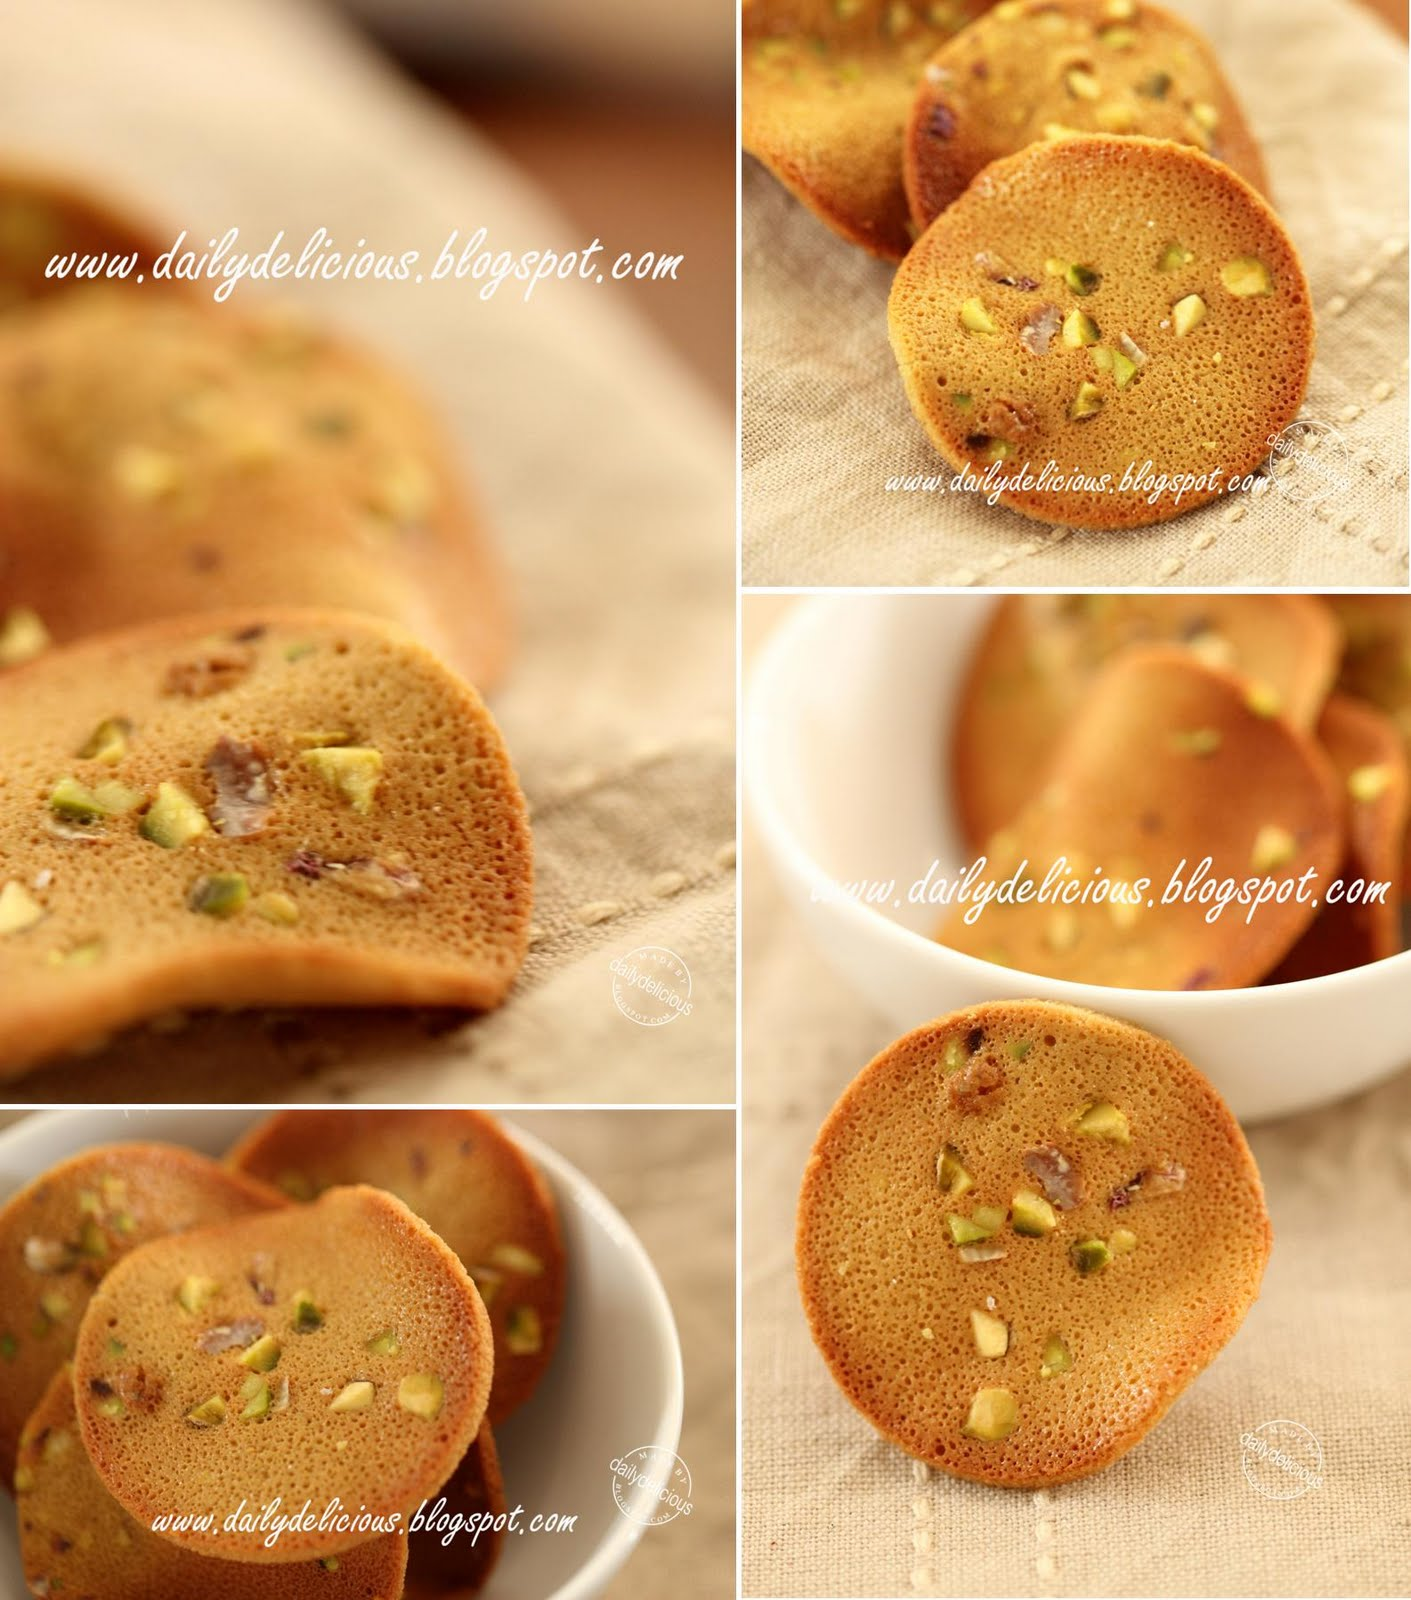 Pistachio tuiles: Thin, delicious and very nutty cookies!